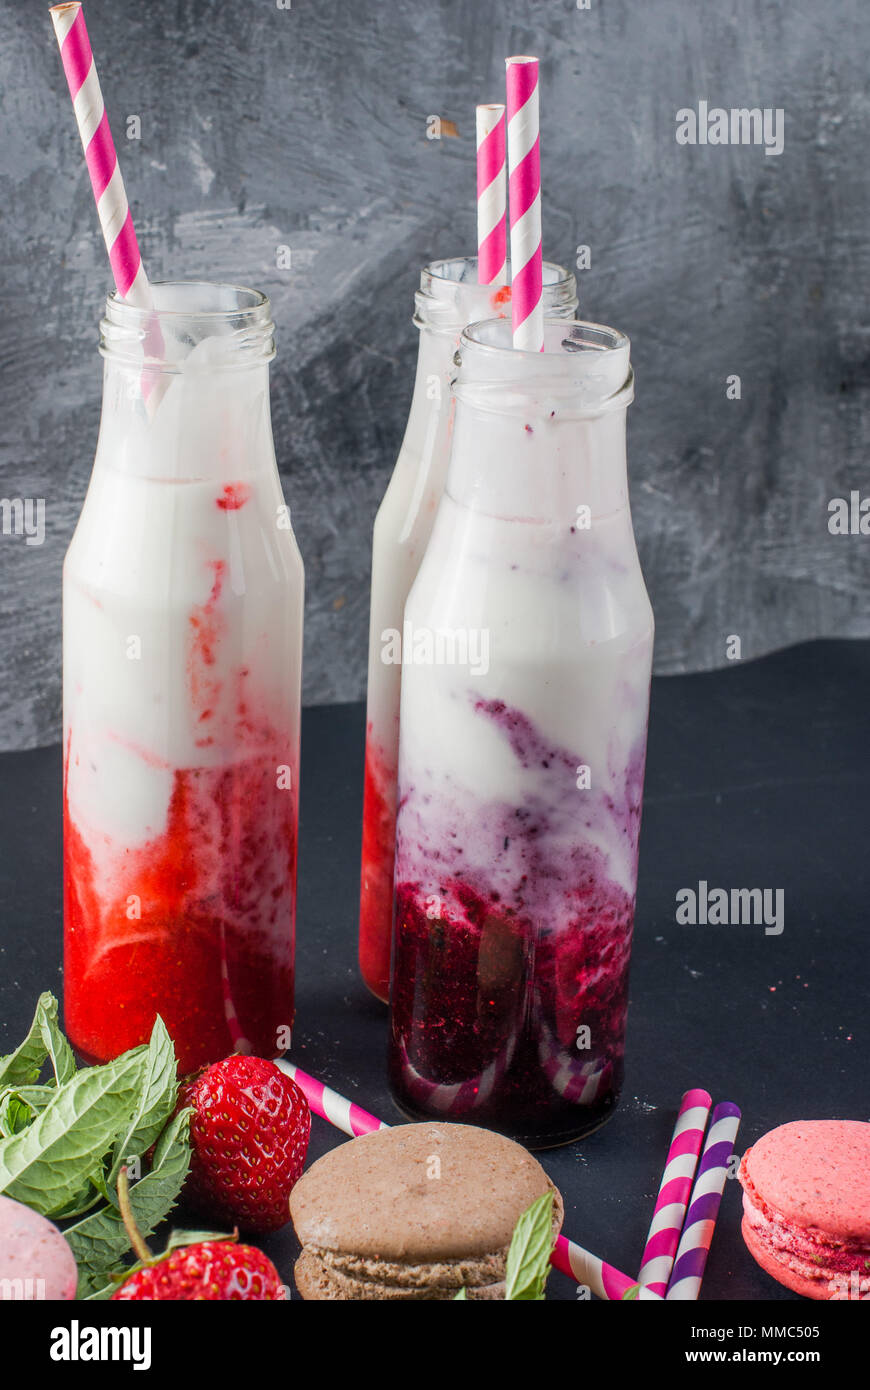 Refreshing strawberry and blueberry smoothies in a glass bottle close-up and  bowl of fresh strawberries on the table. - Stock Image